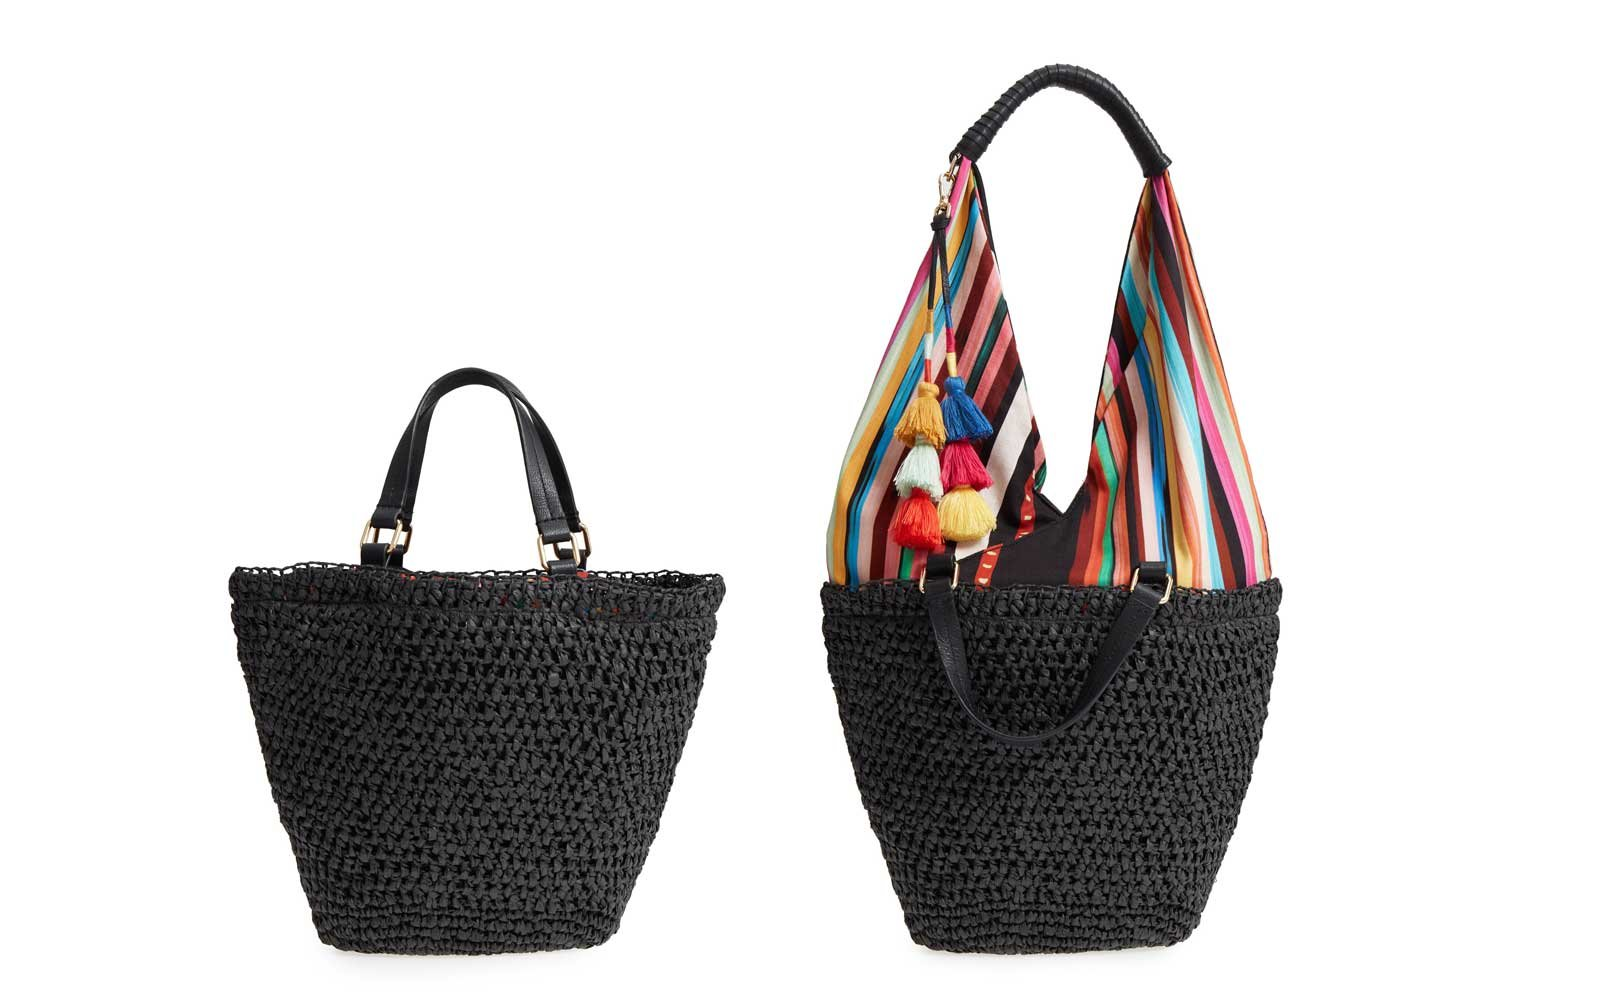 83117417d7 Vince Camuto  Hedda  Convertible Straw Tote